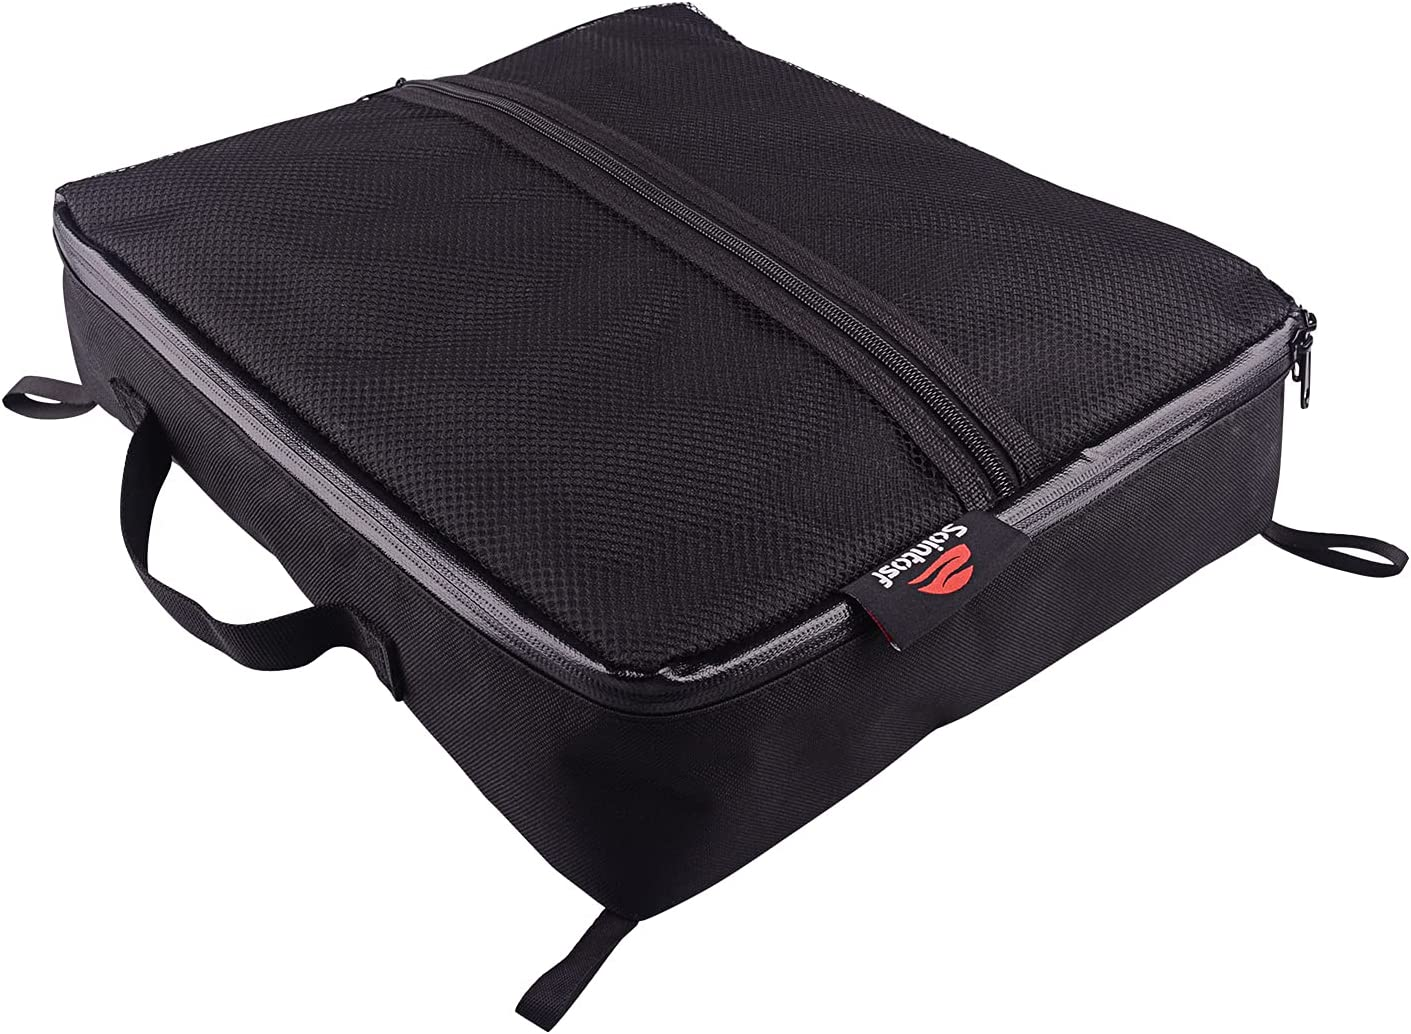 SOINTOSF SUP Deck Same day shipping online shopping Cooler Bag Stand-Up Paddleboard Access